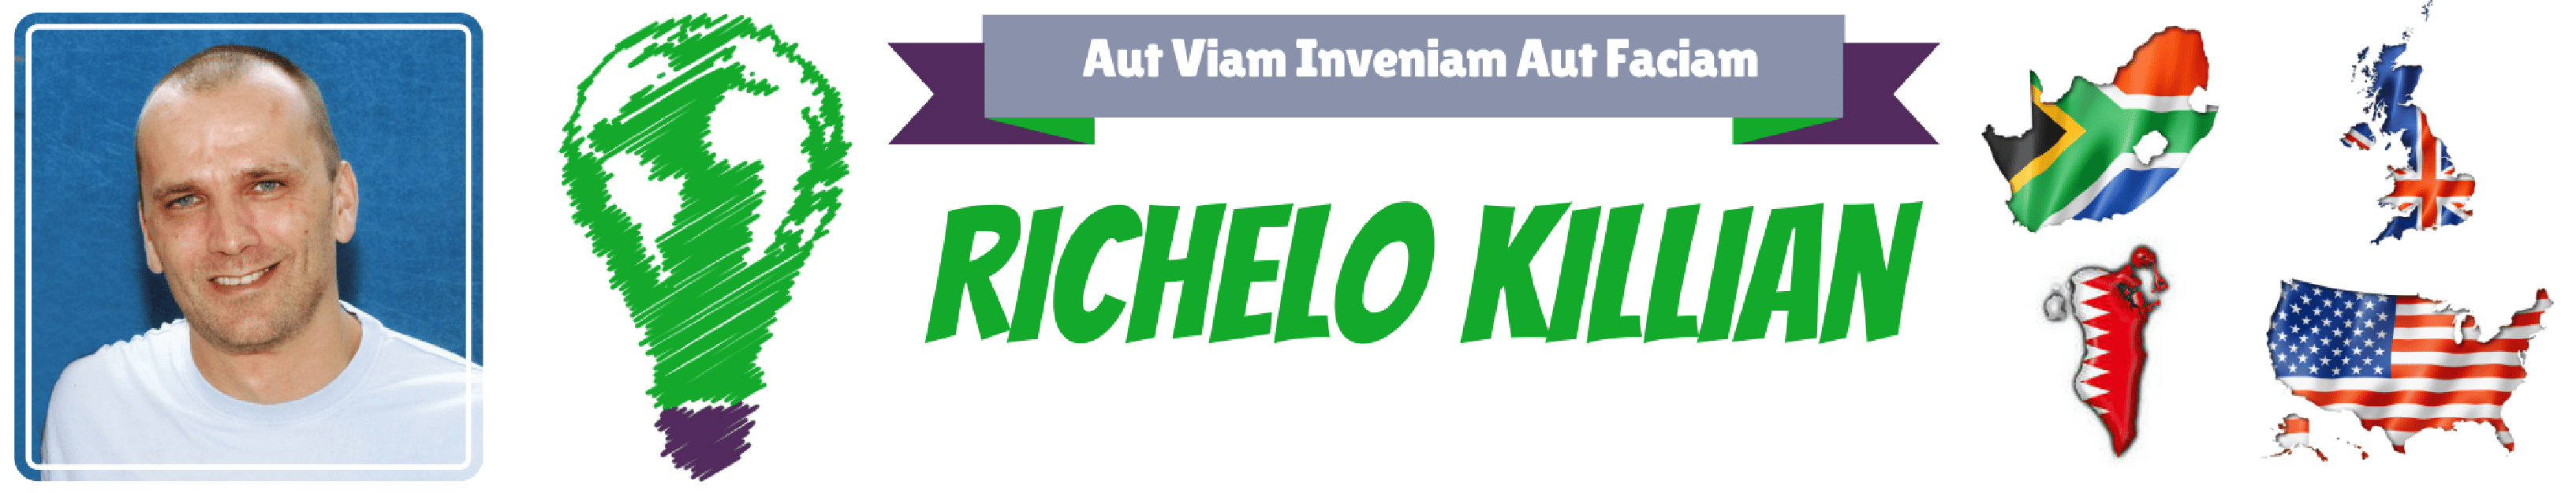 Richelo Killian